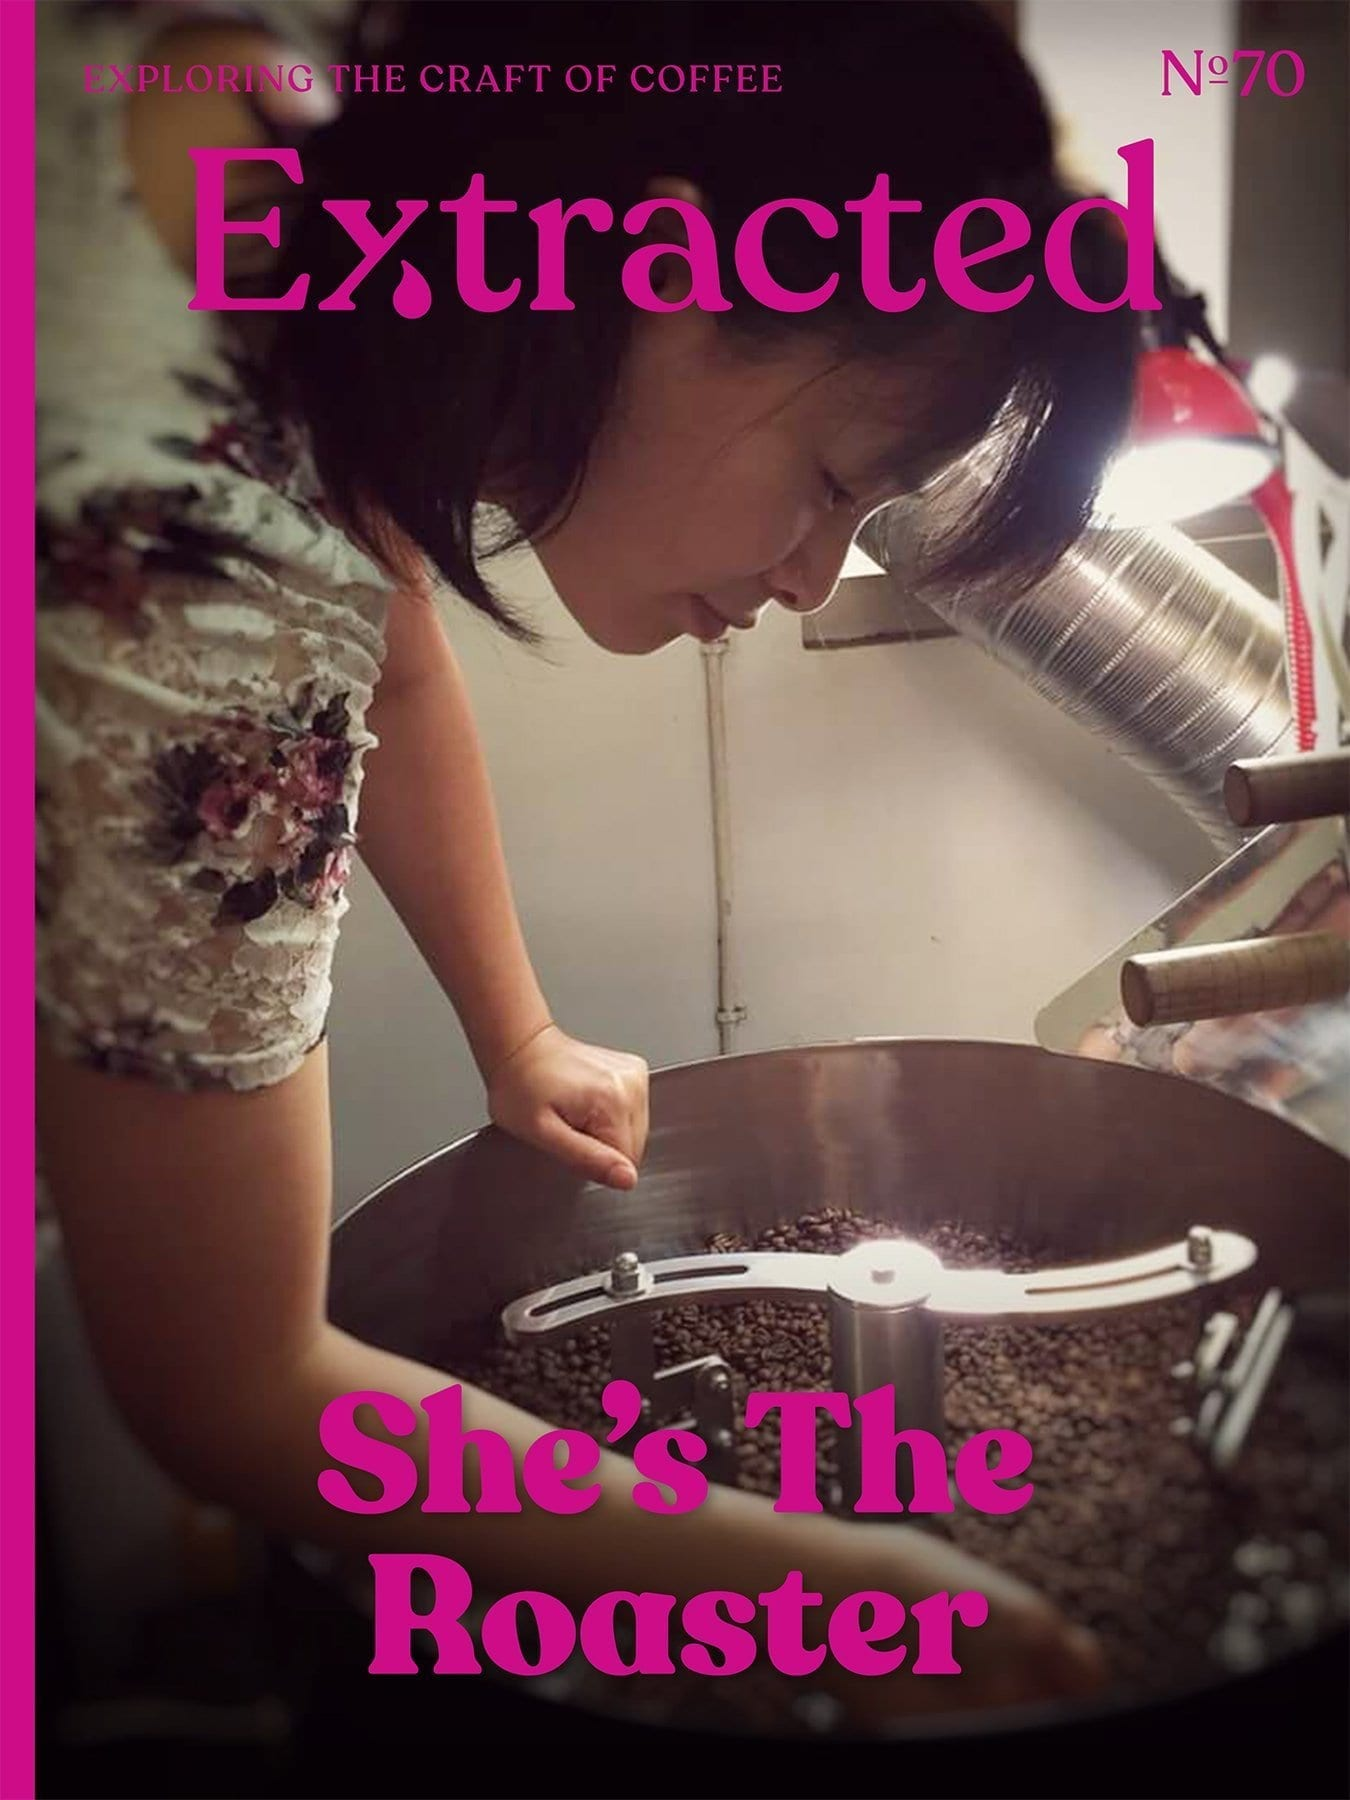 She's the Roaster - Extracted Magazine Issue 71 - Coffee Magazine - Women in Coffee